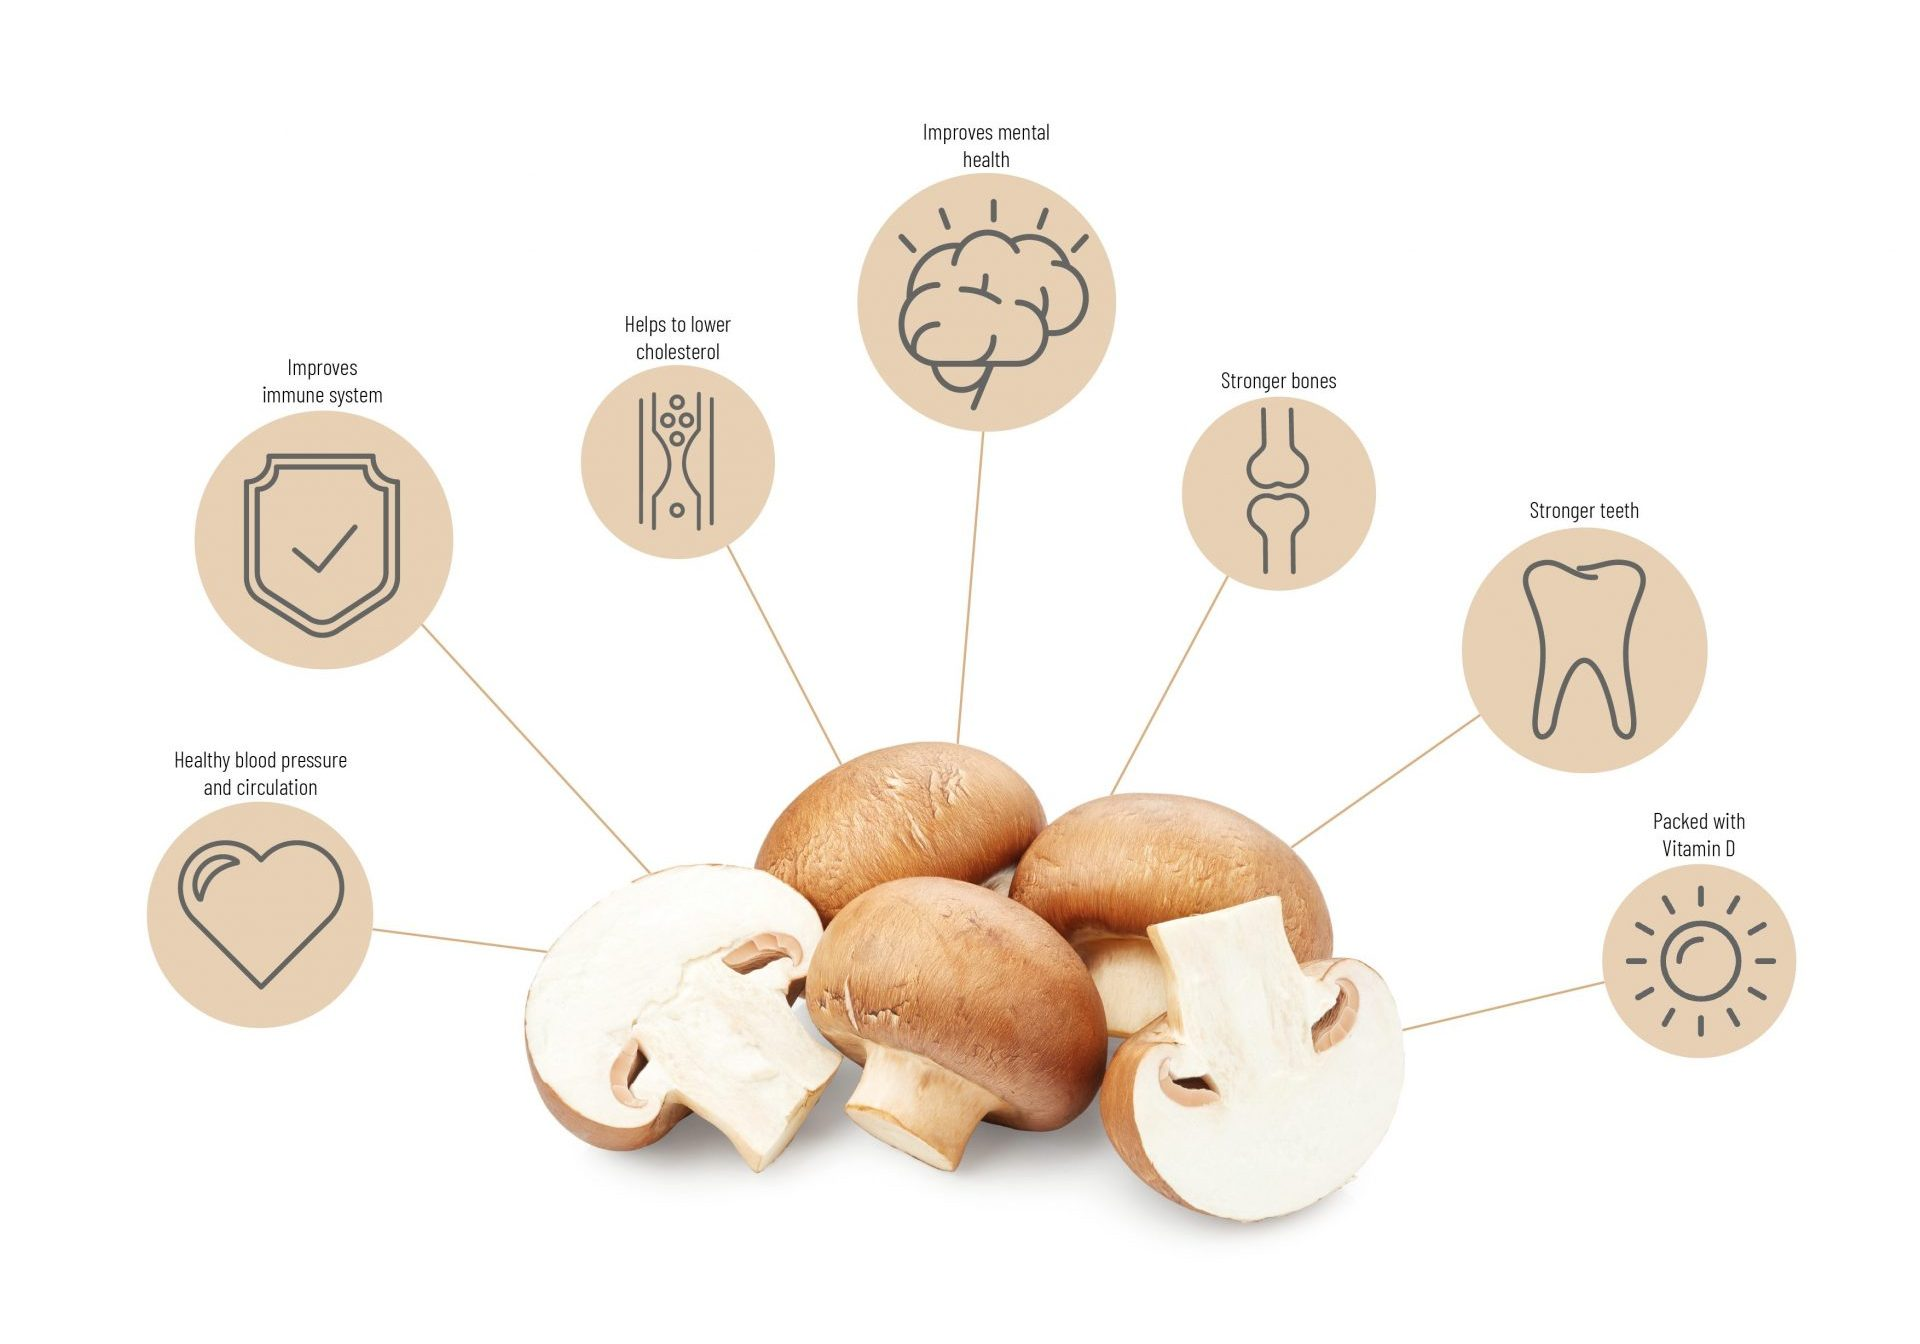 innovation Graphic which shows that mushrooms are rich in nutrients